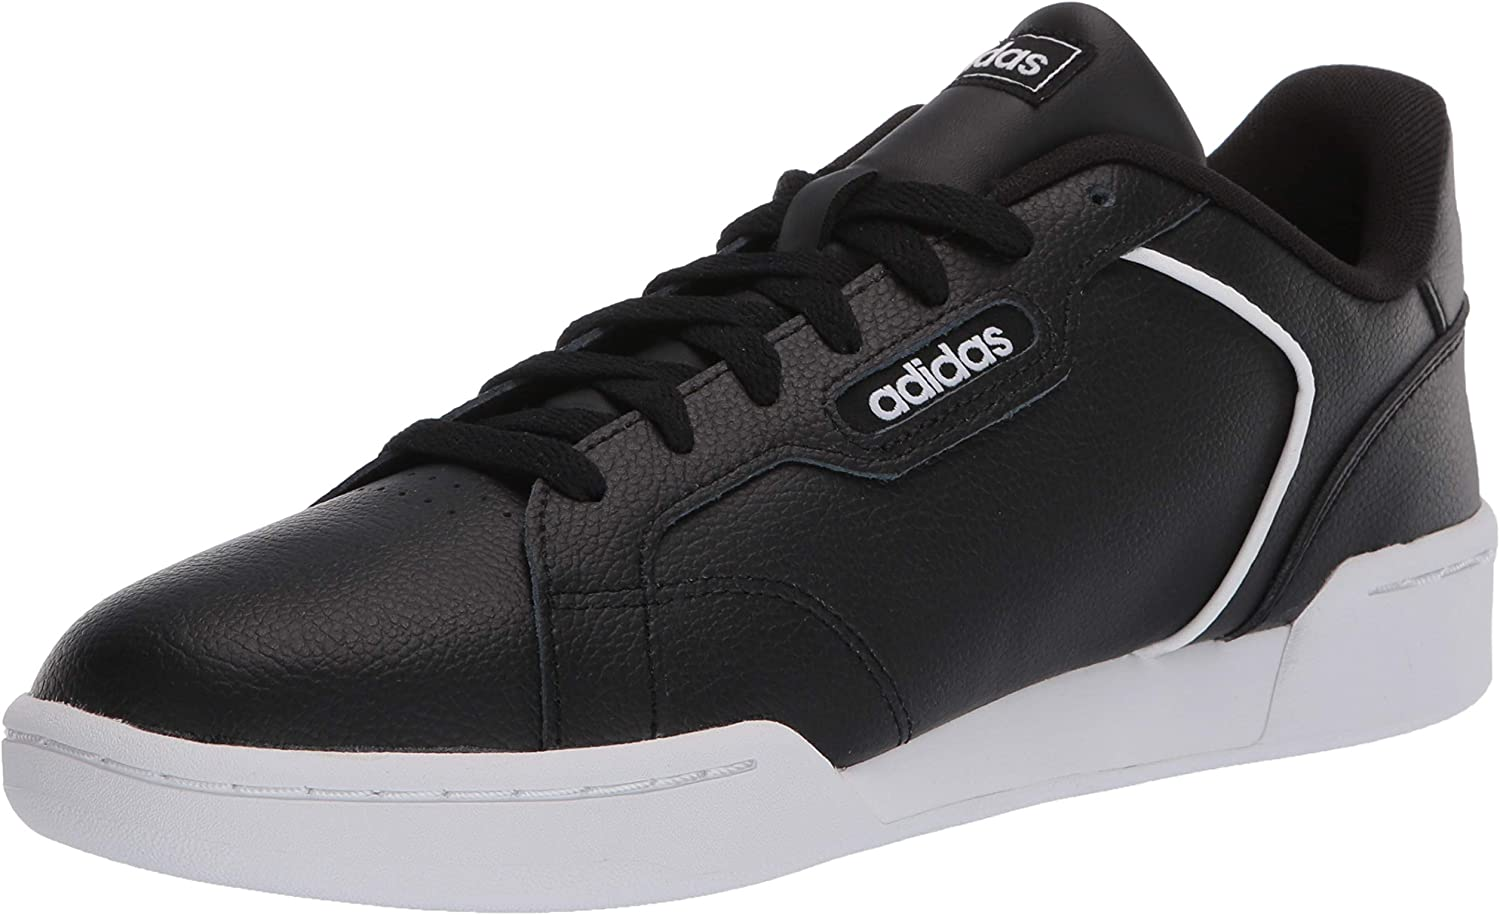 adidas all black womens sneakers